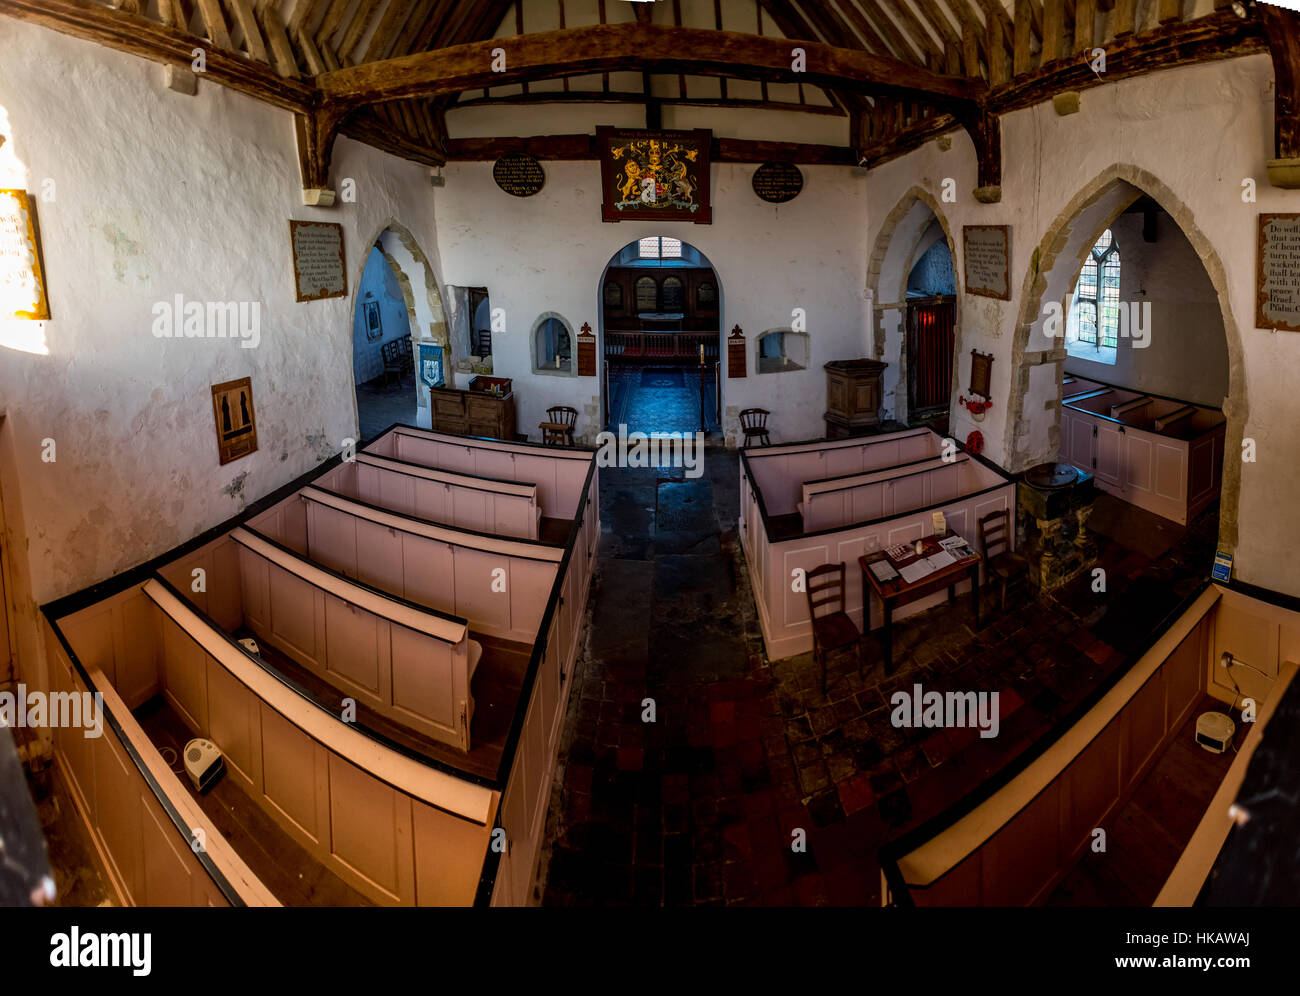 St Clement church in Old Romney, Kent, dating back to the twelfth century - Stock Image